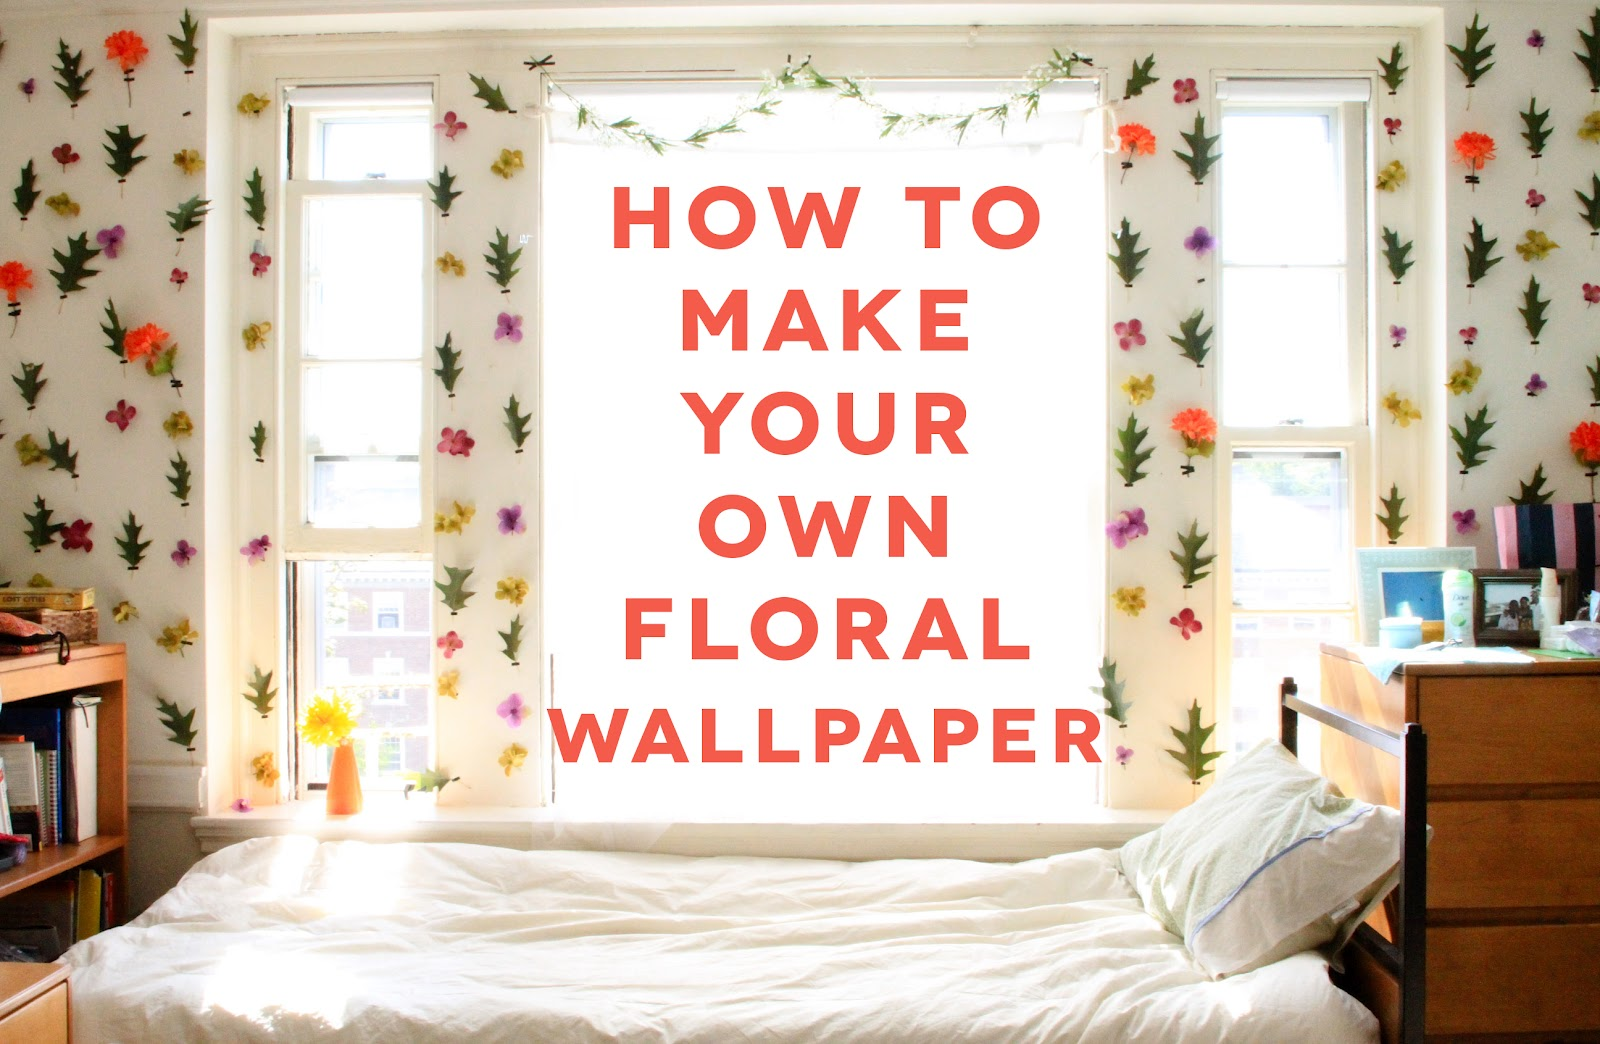 DIY DORM ROOM DECOR // FLORAL WALLPAPER!